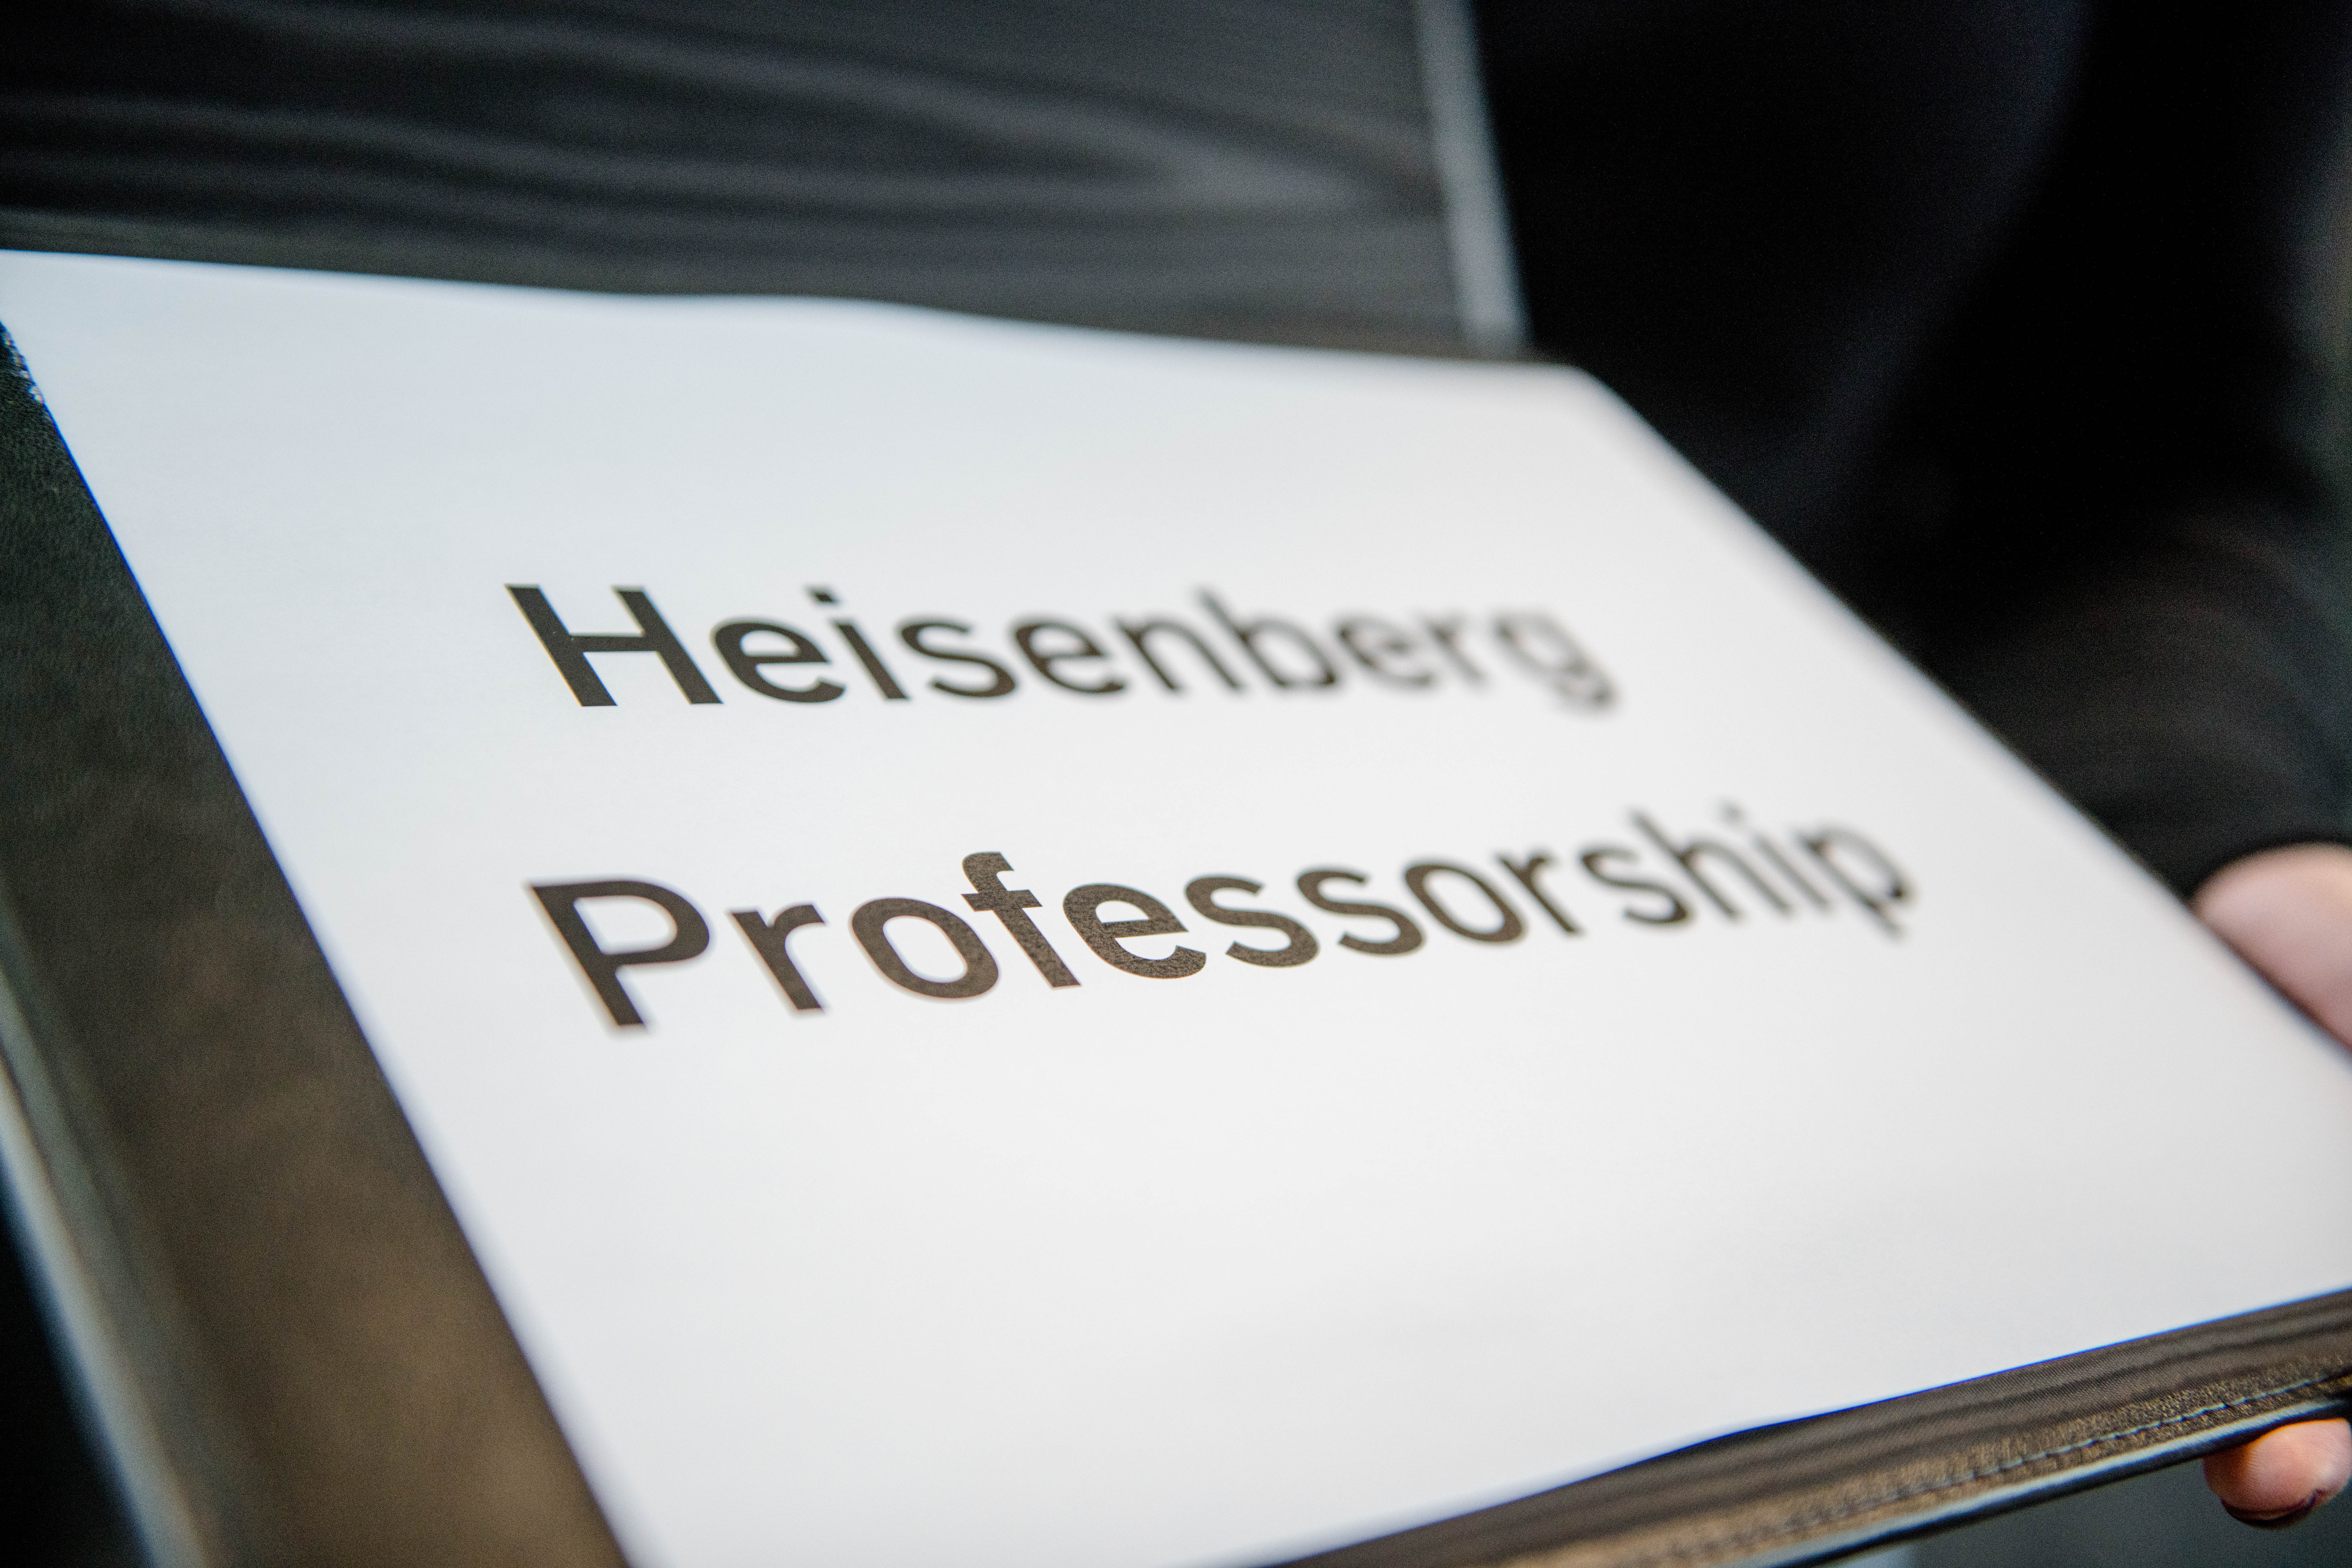 A folder with the inscription Heisenberg Professorship